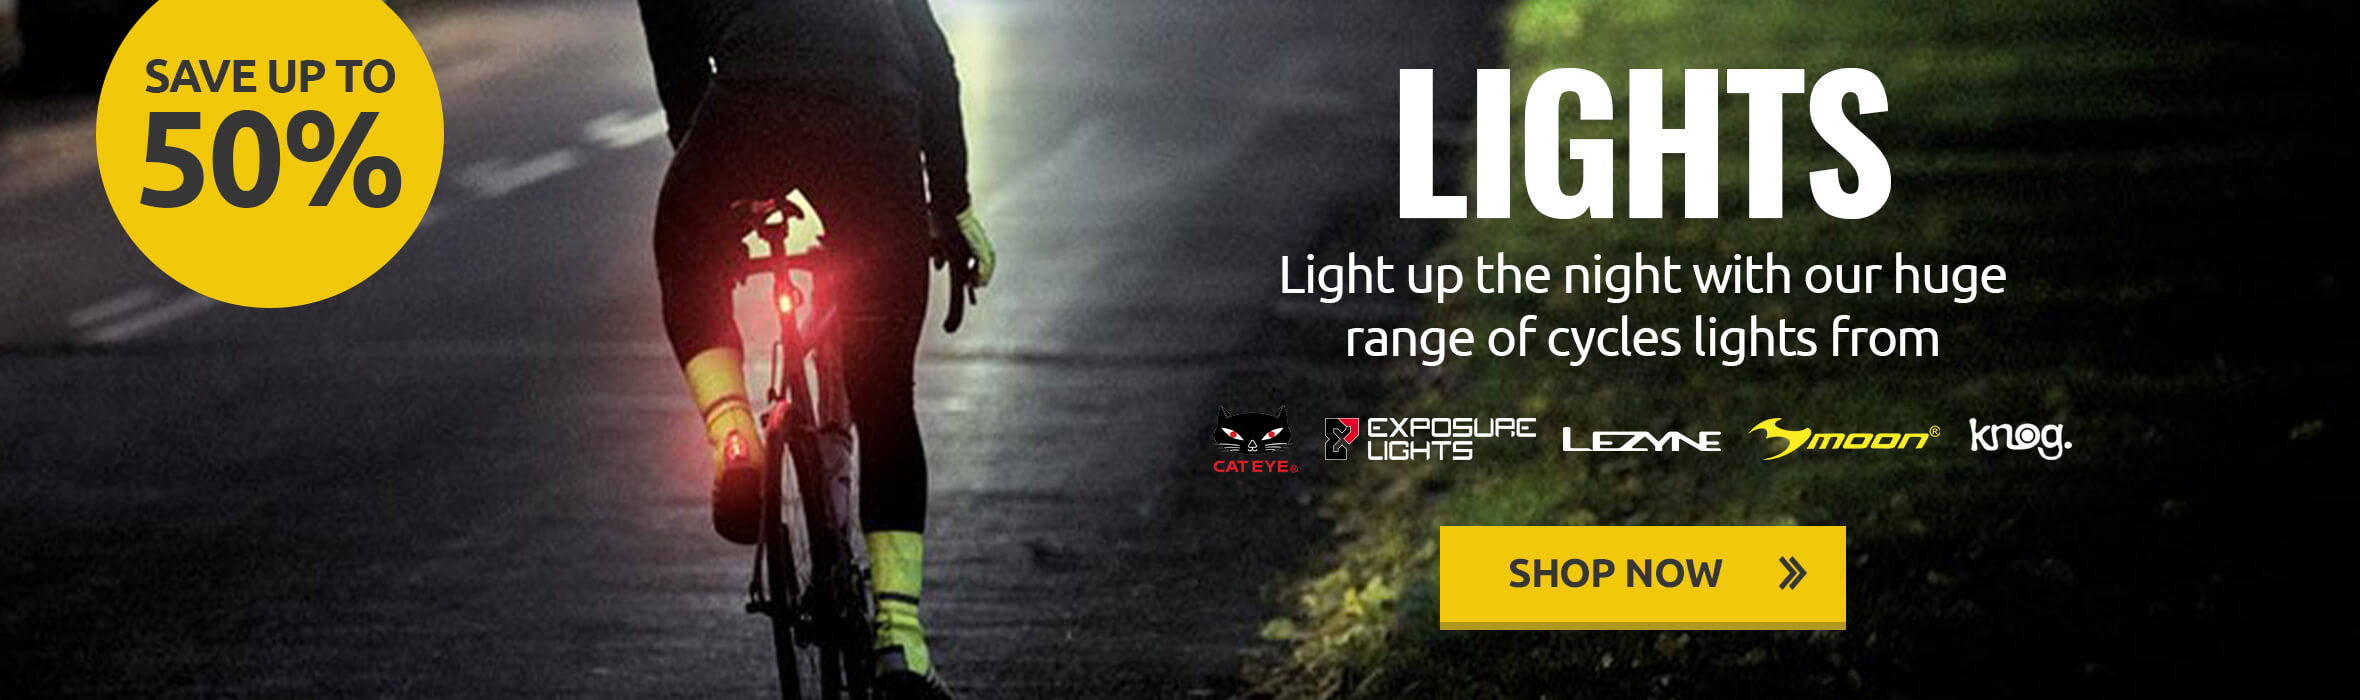 Save up to 50% on Lights